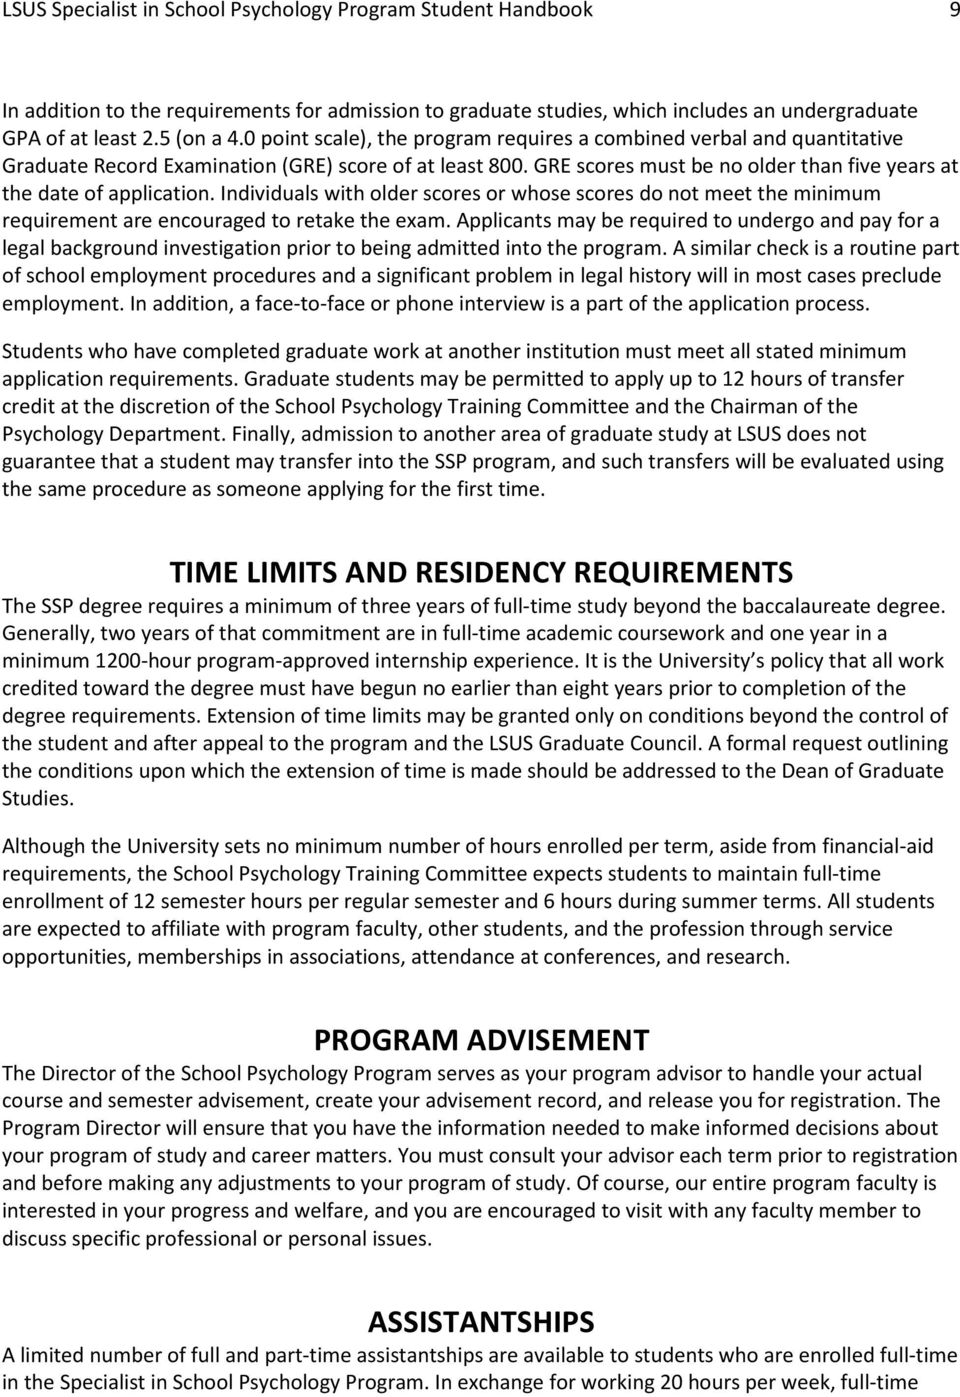 Individuals with older scores or whose scores do not meet the minimum requirement are encouraged to retake the exam.